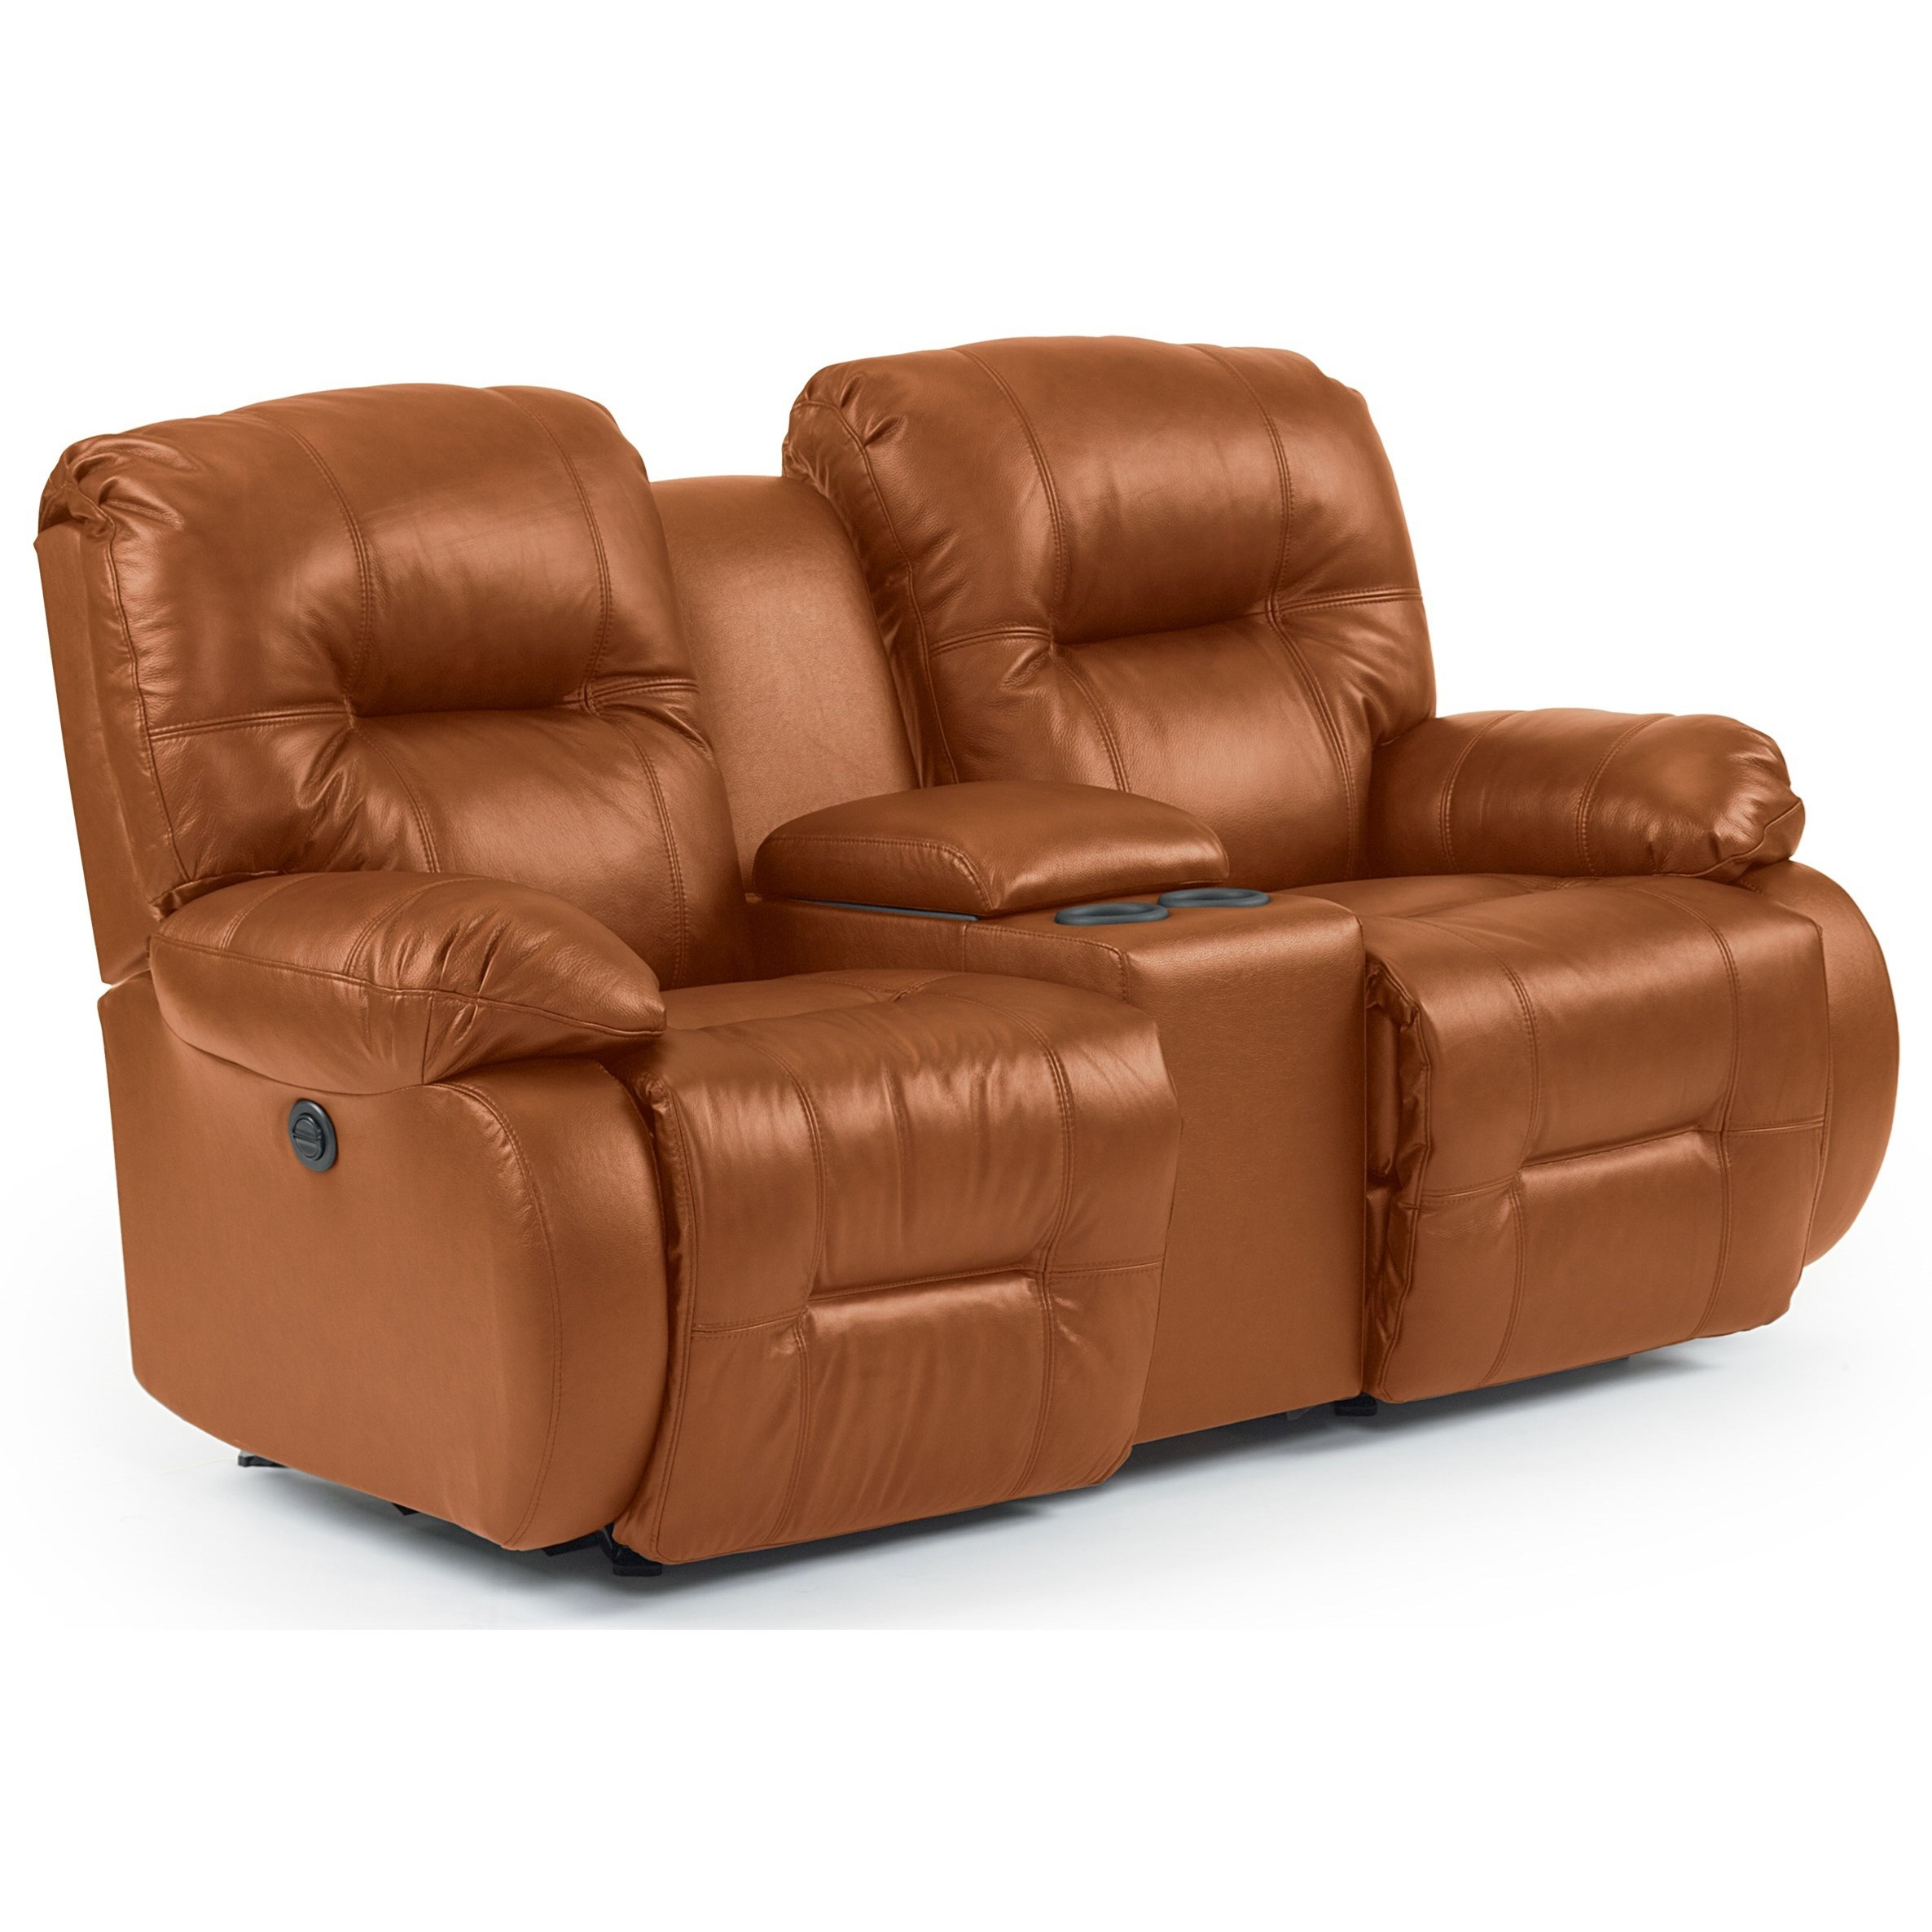 Brinley 2 Space Saver Console Loveseat by Best Home Furnishings at Best Home Furnishings